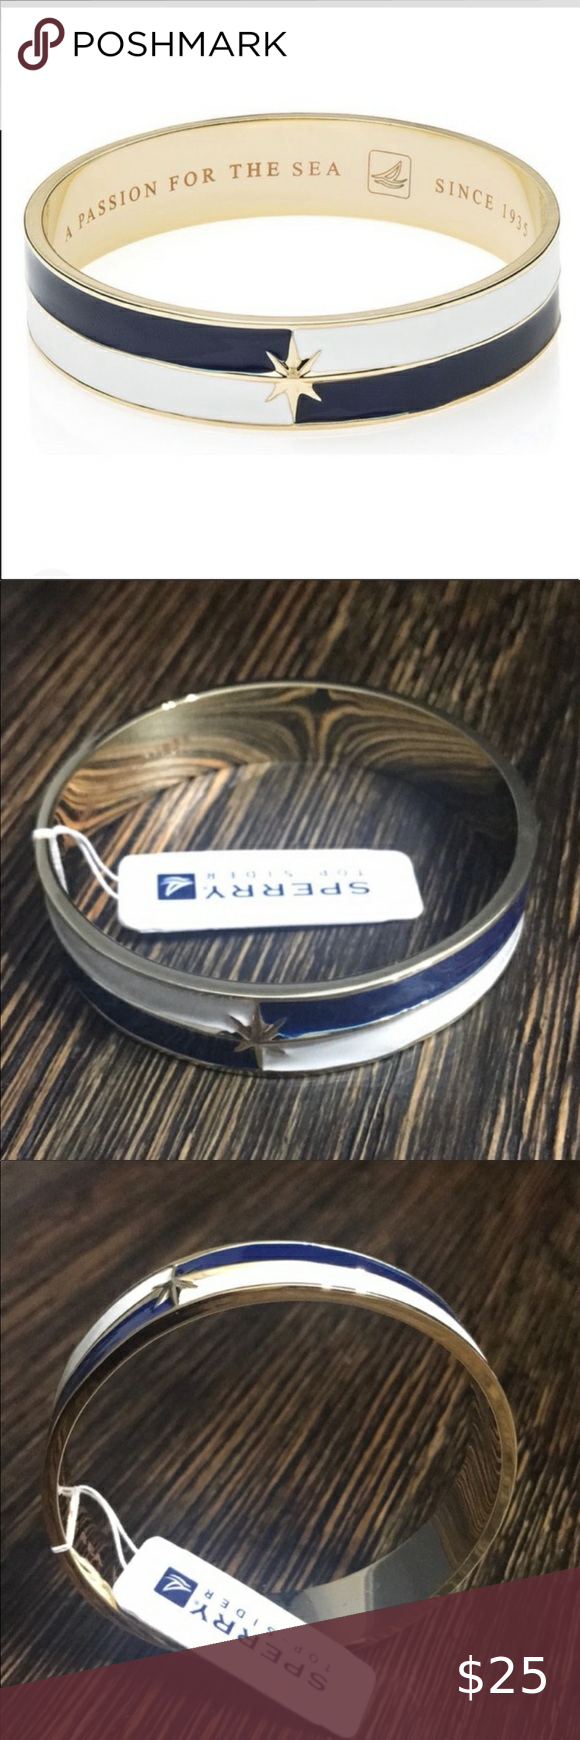 New Sperry Top Sider Star enamel bangle bracelet